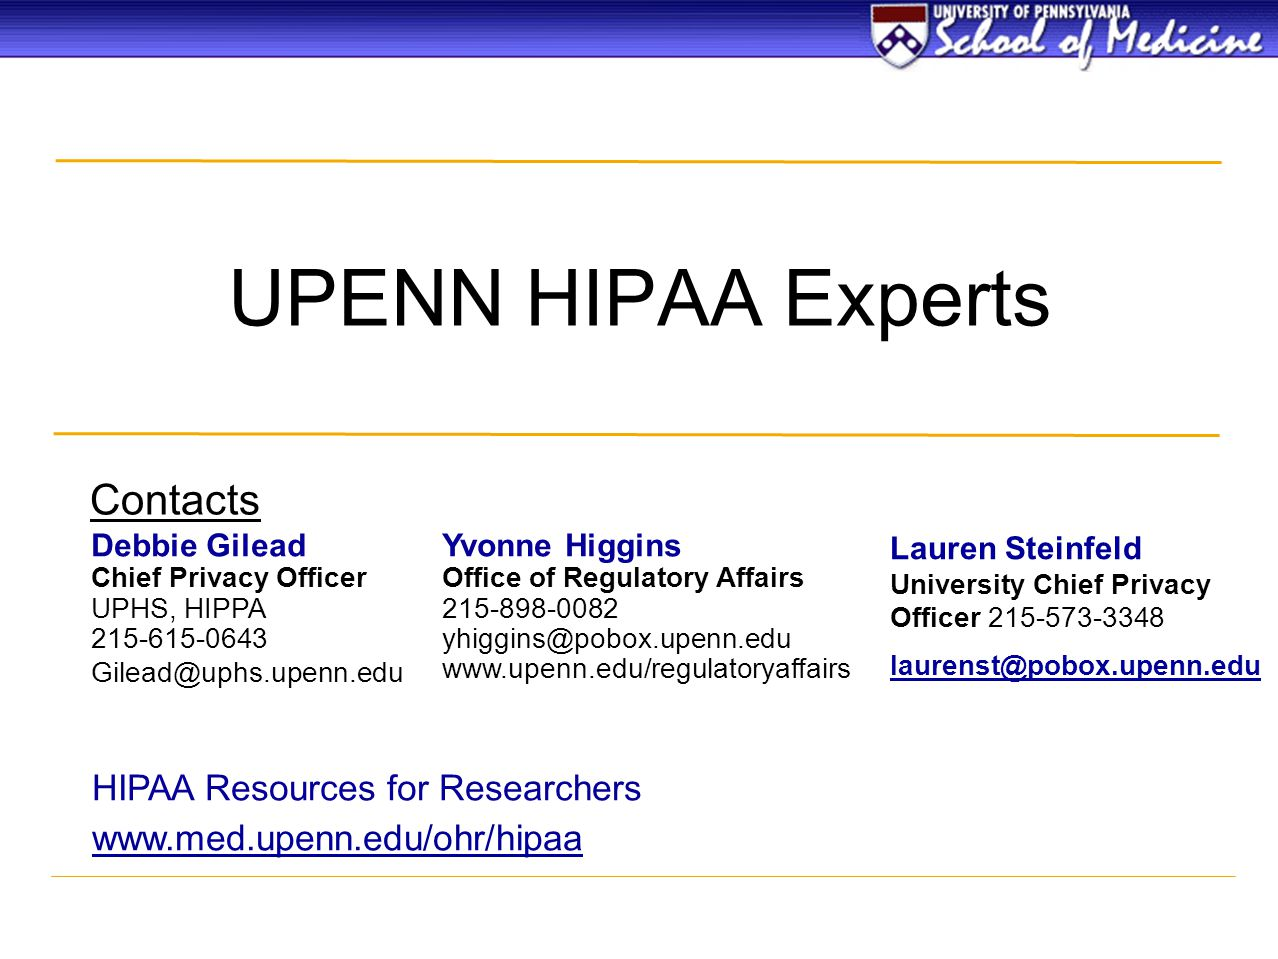 University of Pennsylvania De-Identified Data UPHS/SOM may use or disclose de-identified data for research purposes provided its done as part of an IRB approved protocol De-identified data is not covered by HIPAA and may be disclosed for research purposes A code may be applied to the data that would allow re-identification of data but only within the covered entity